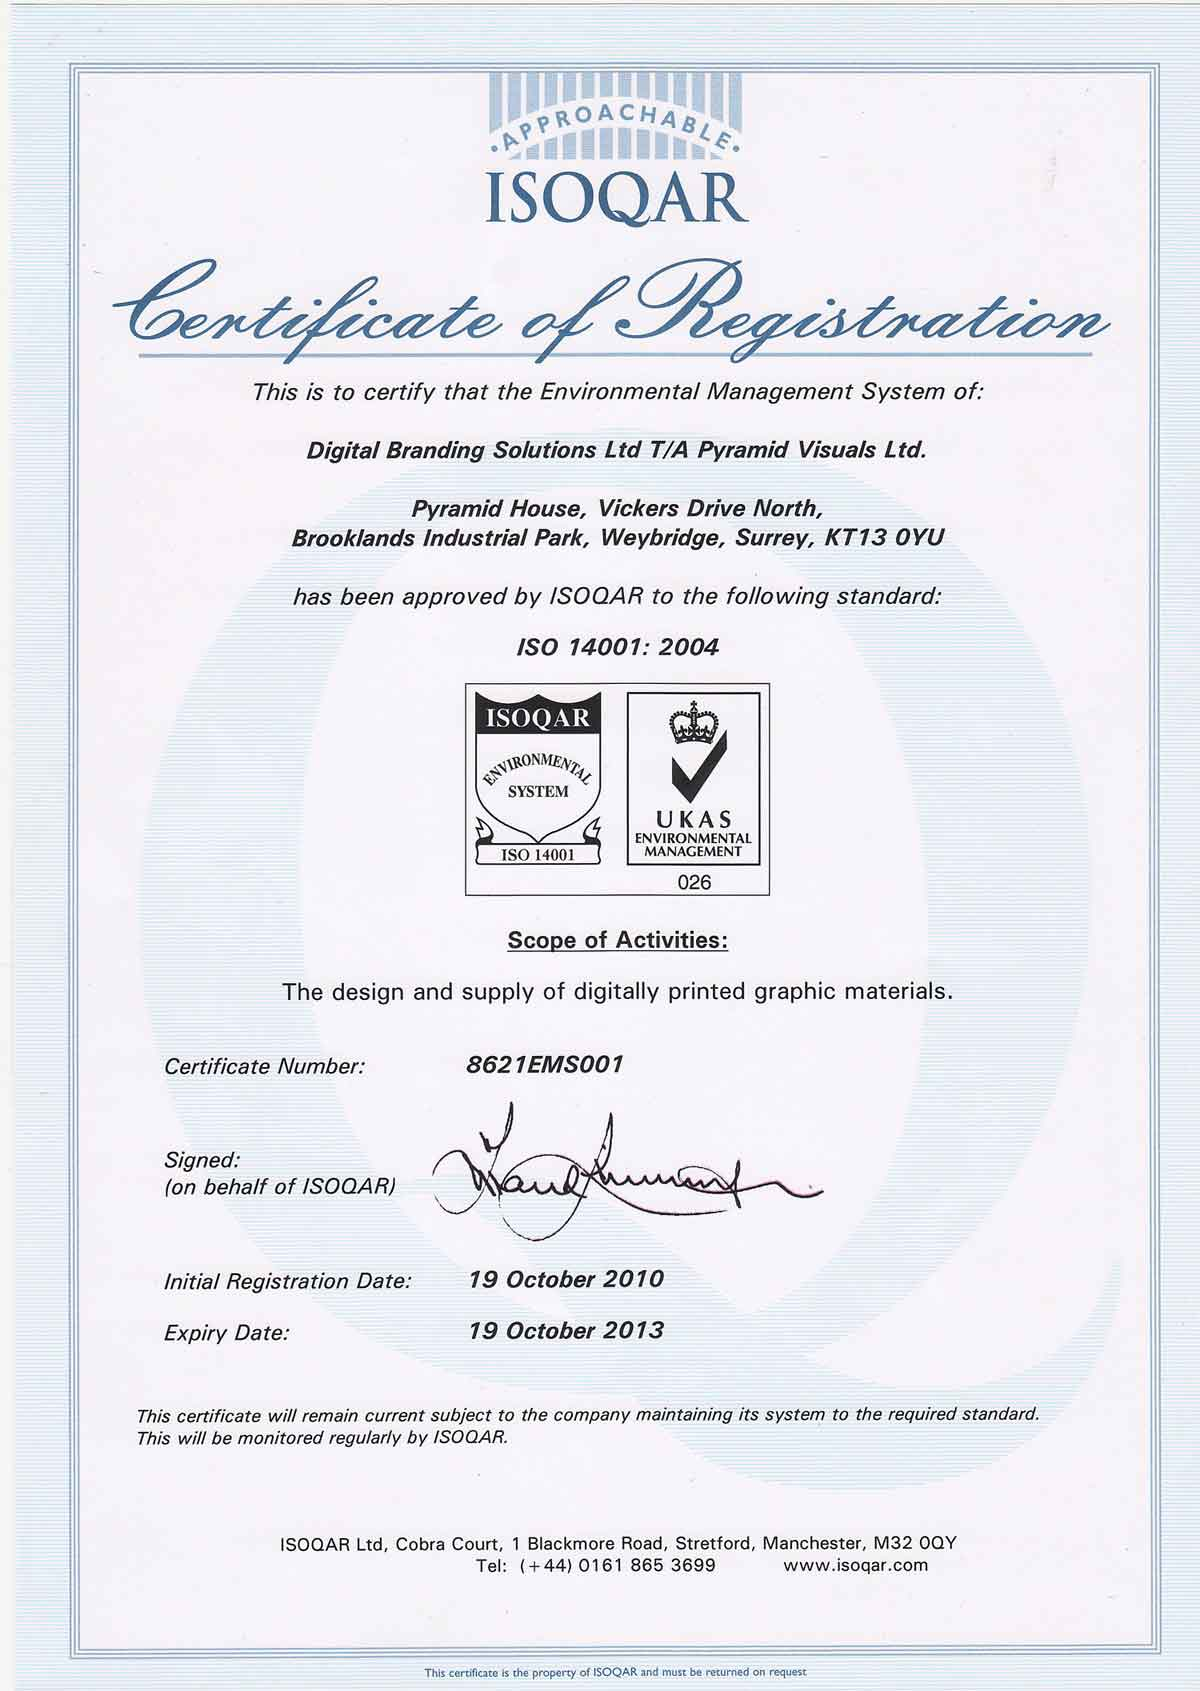 iso 14001 certification meaning